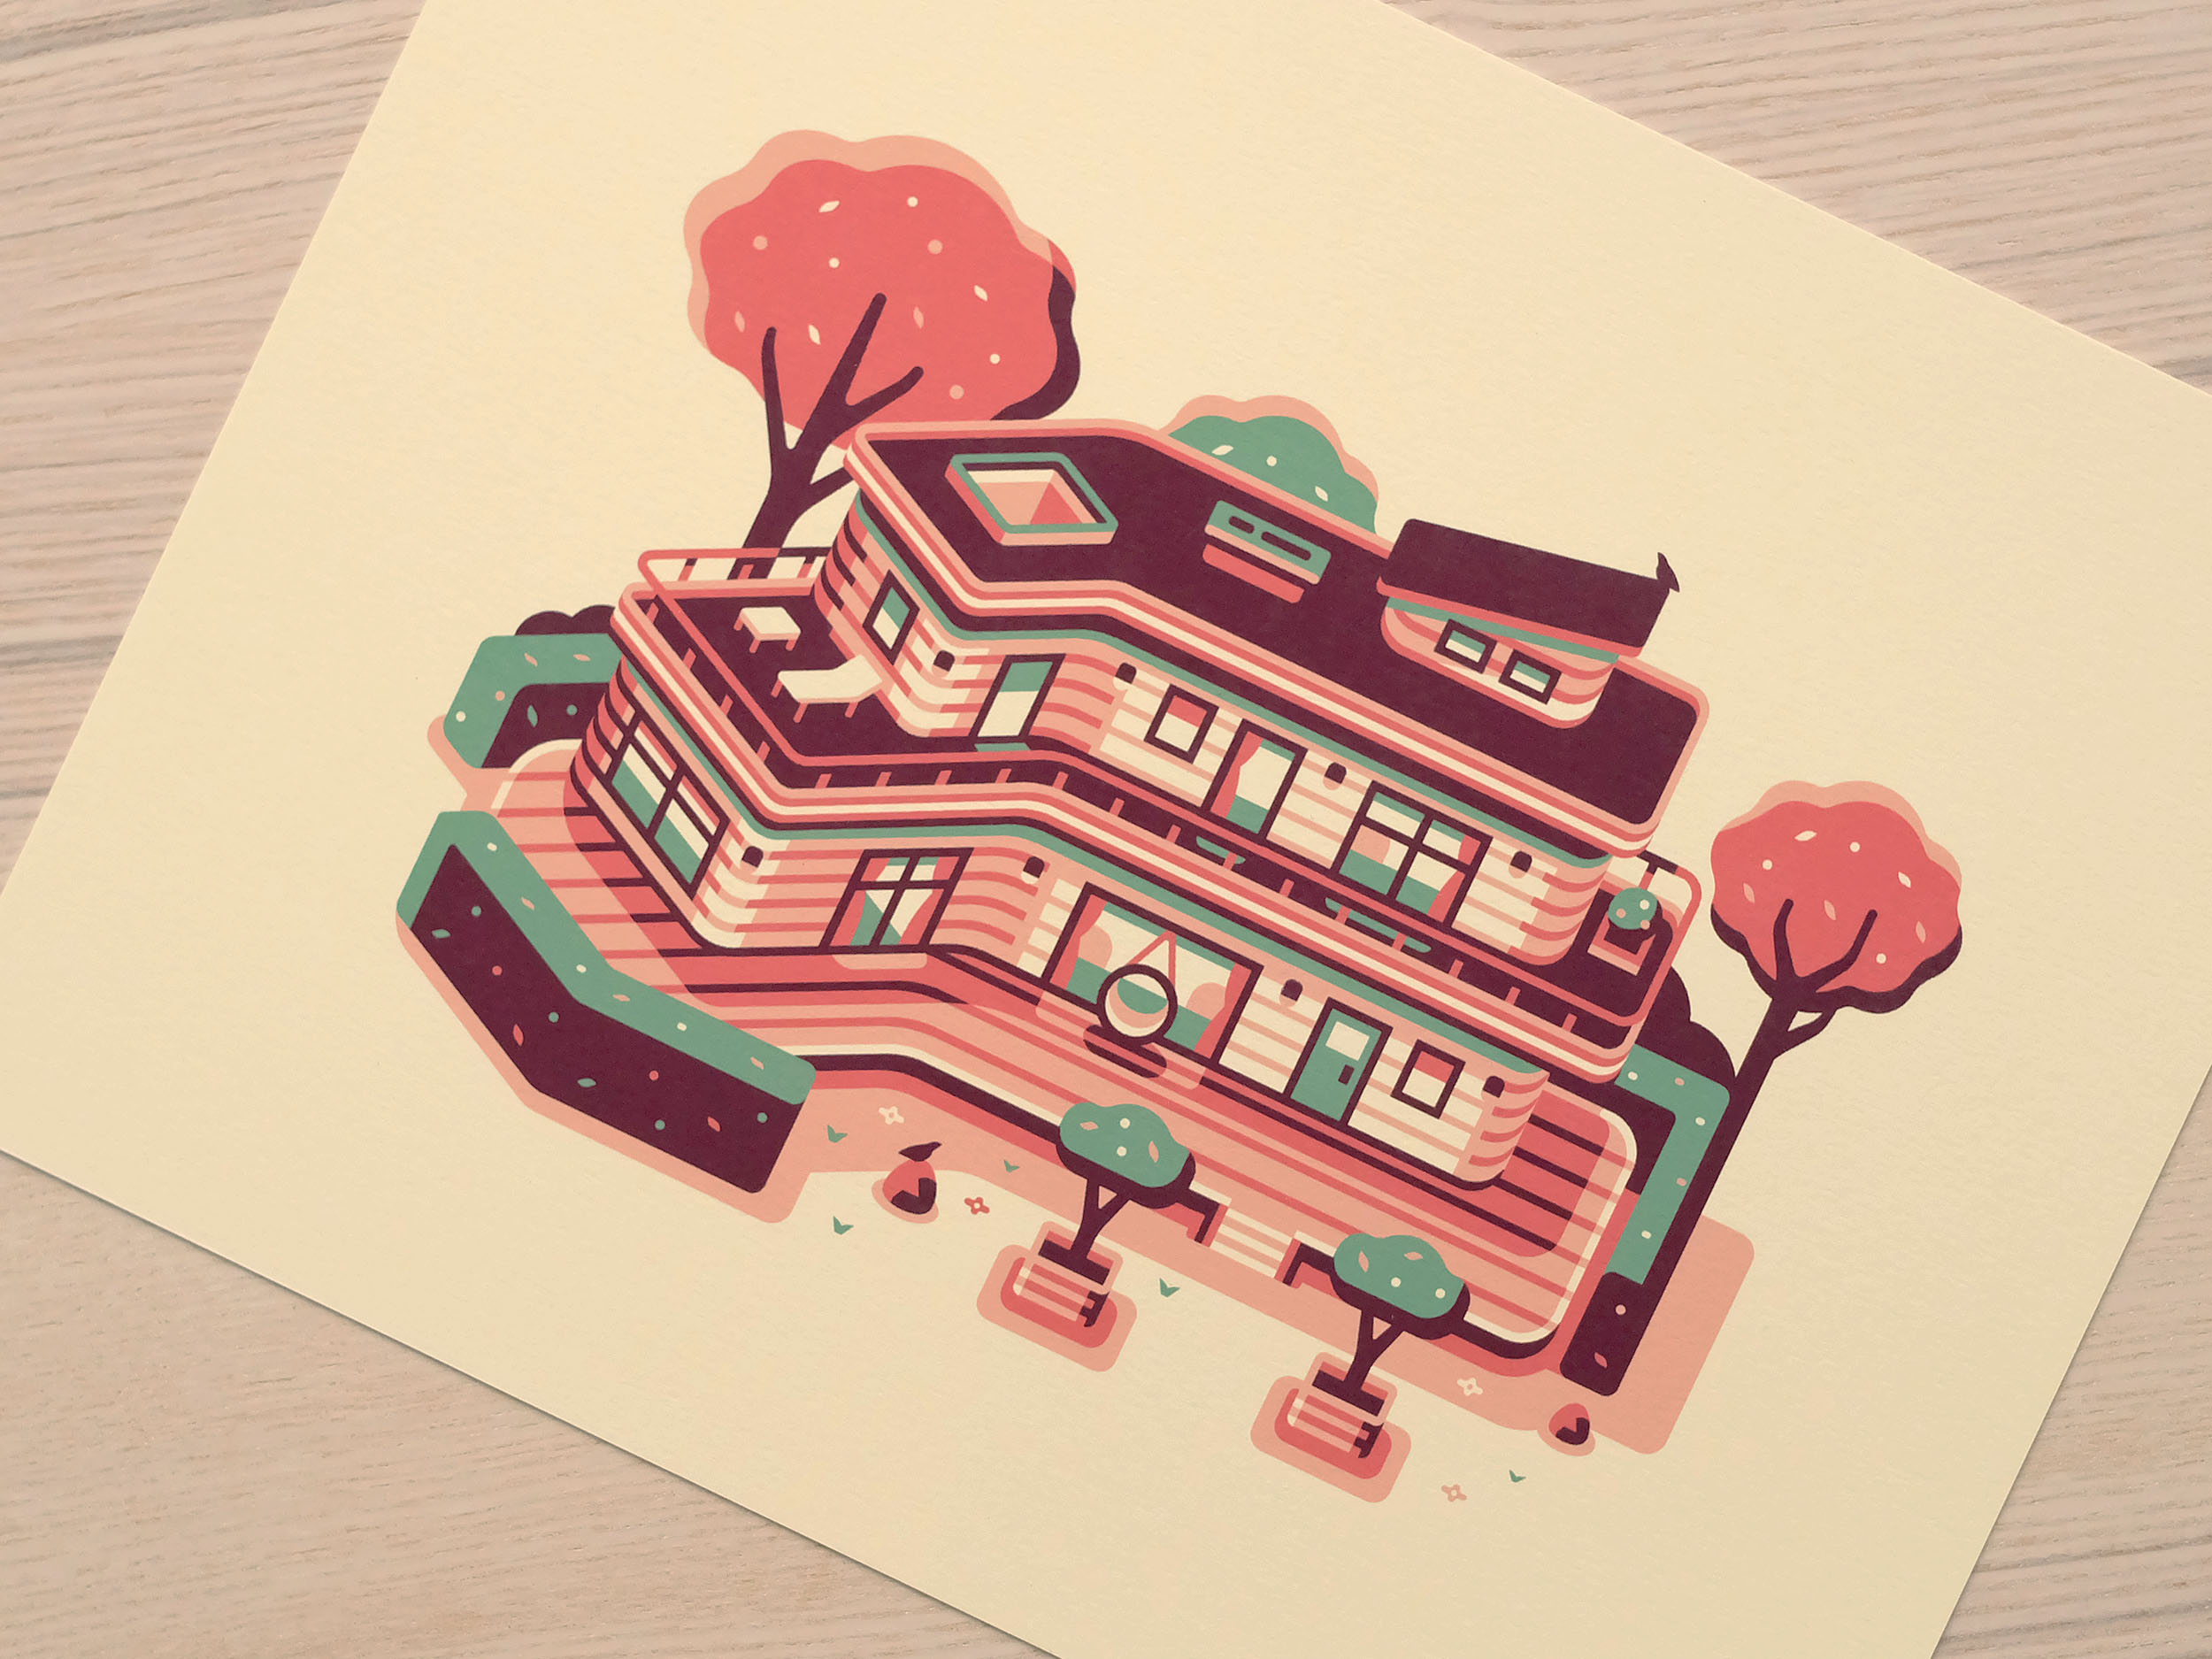 Woodland House print photo, Modern Home series illustration by Matt Anderson and Canopy Design and Illustration